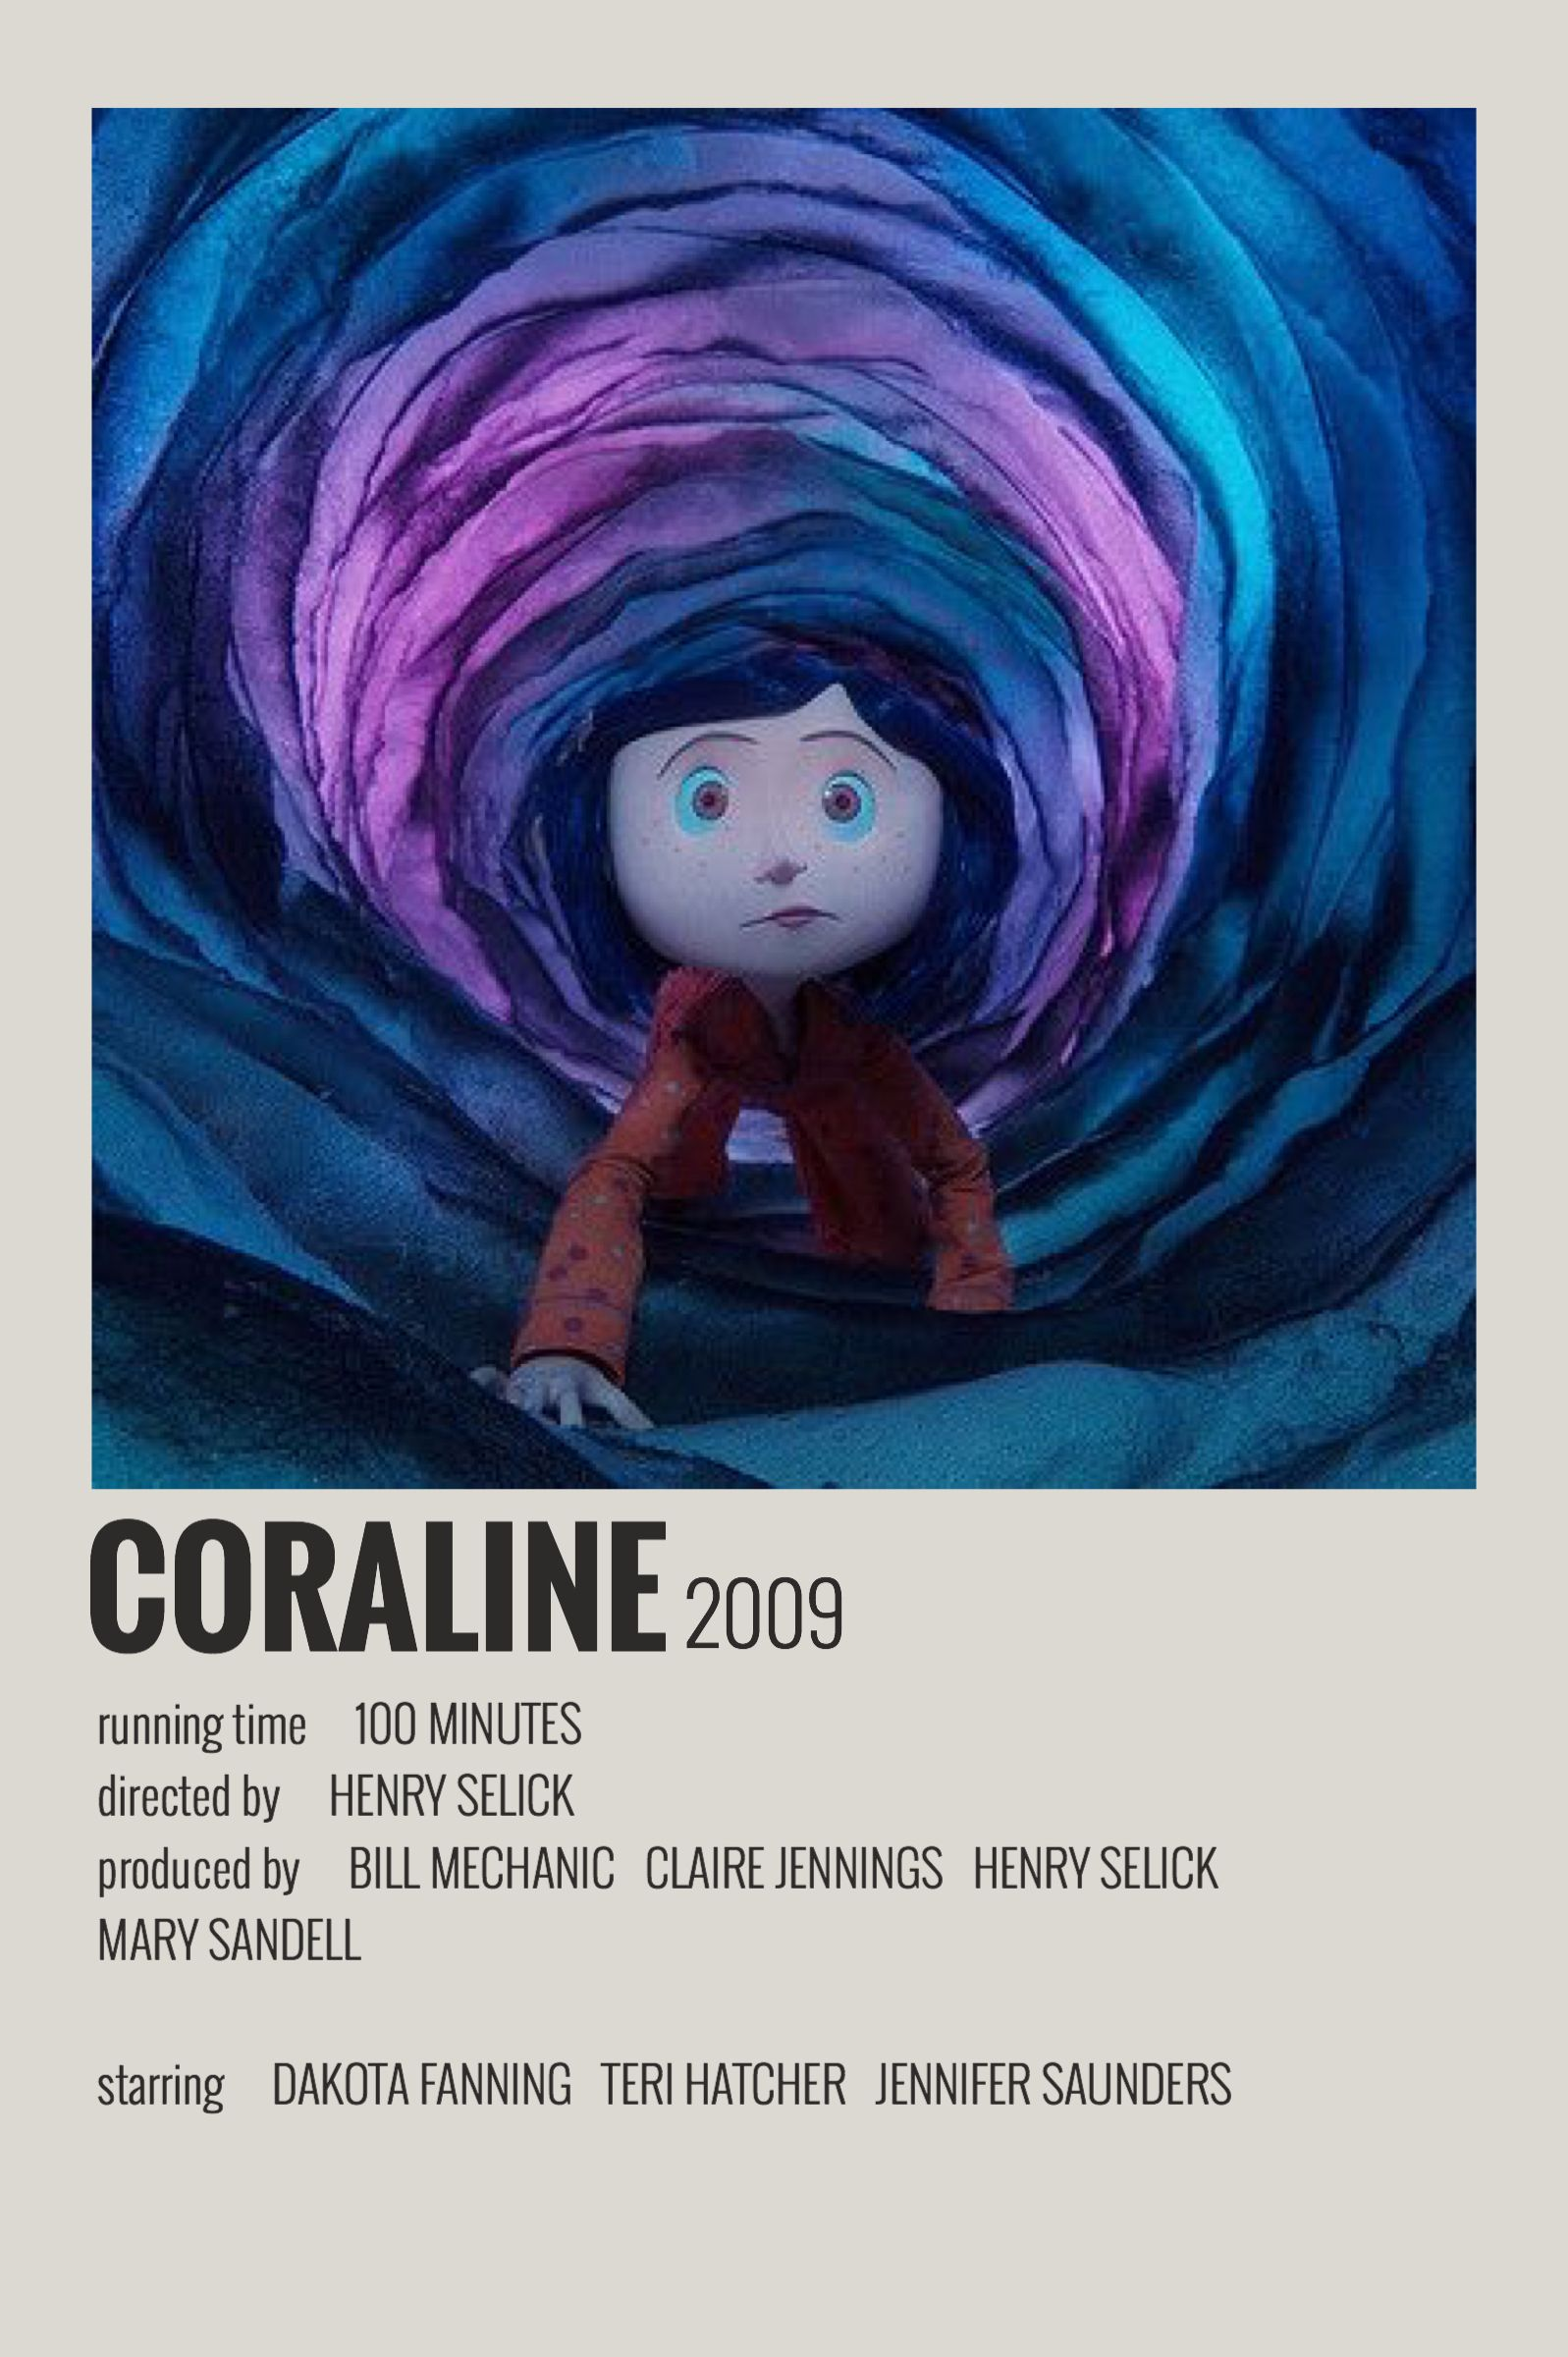 coraline official movie poster